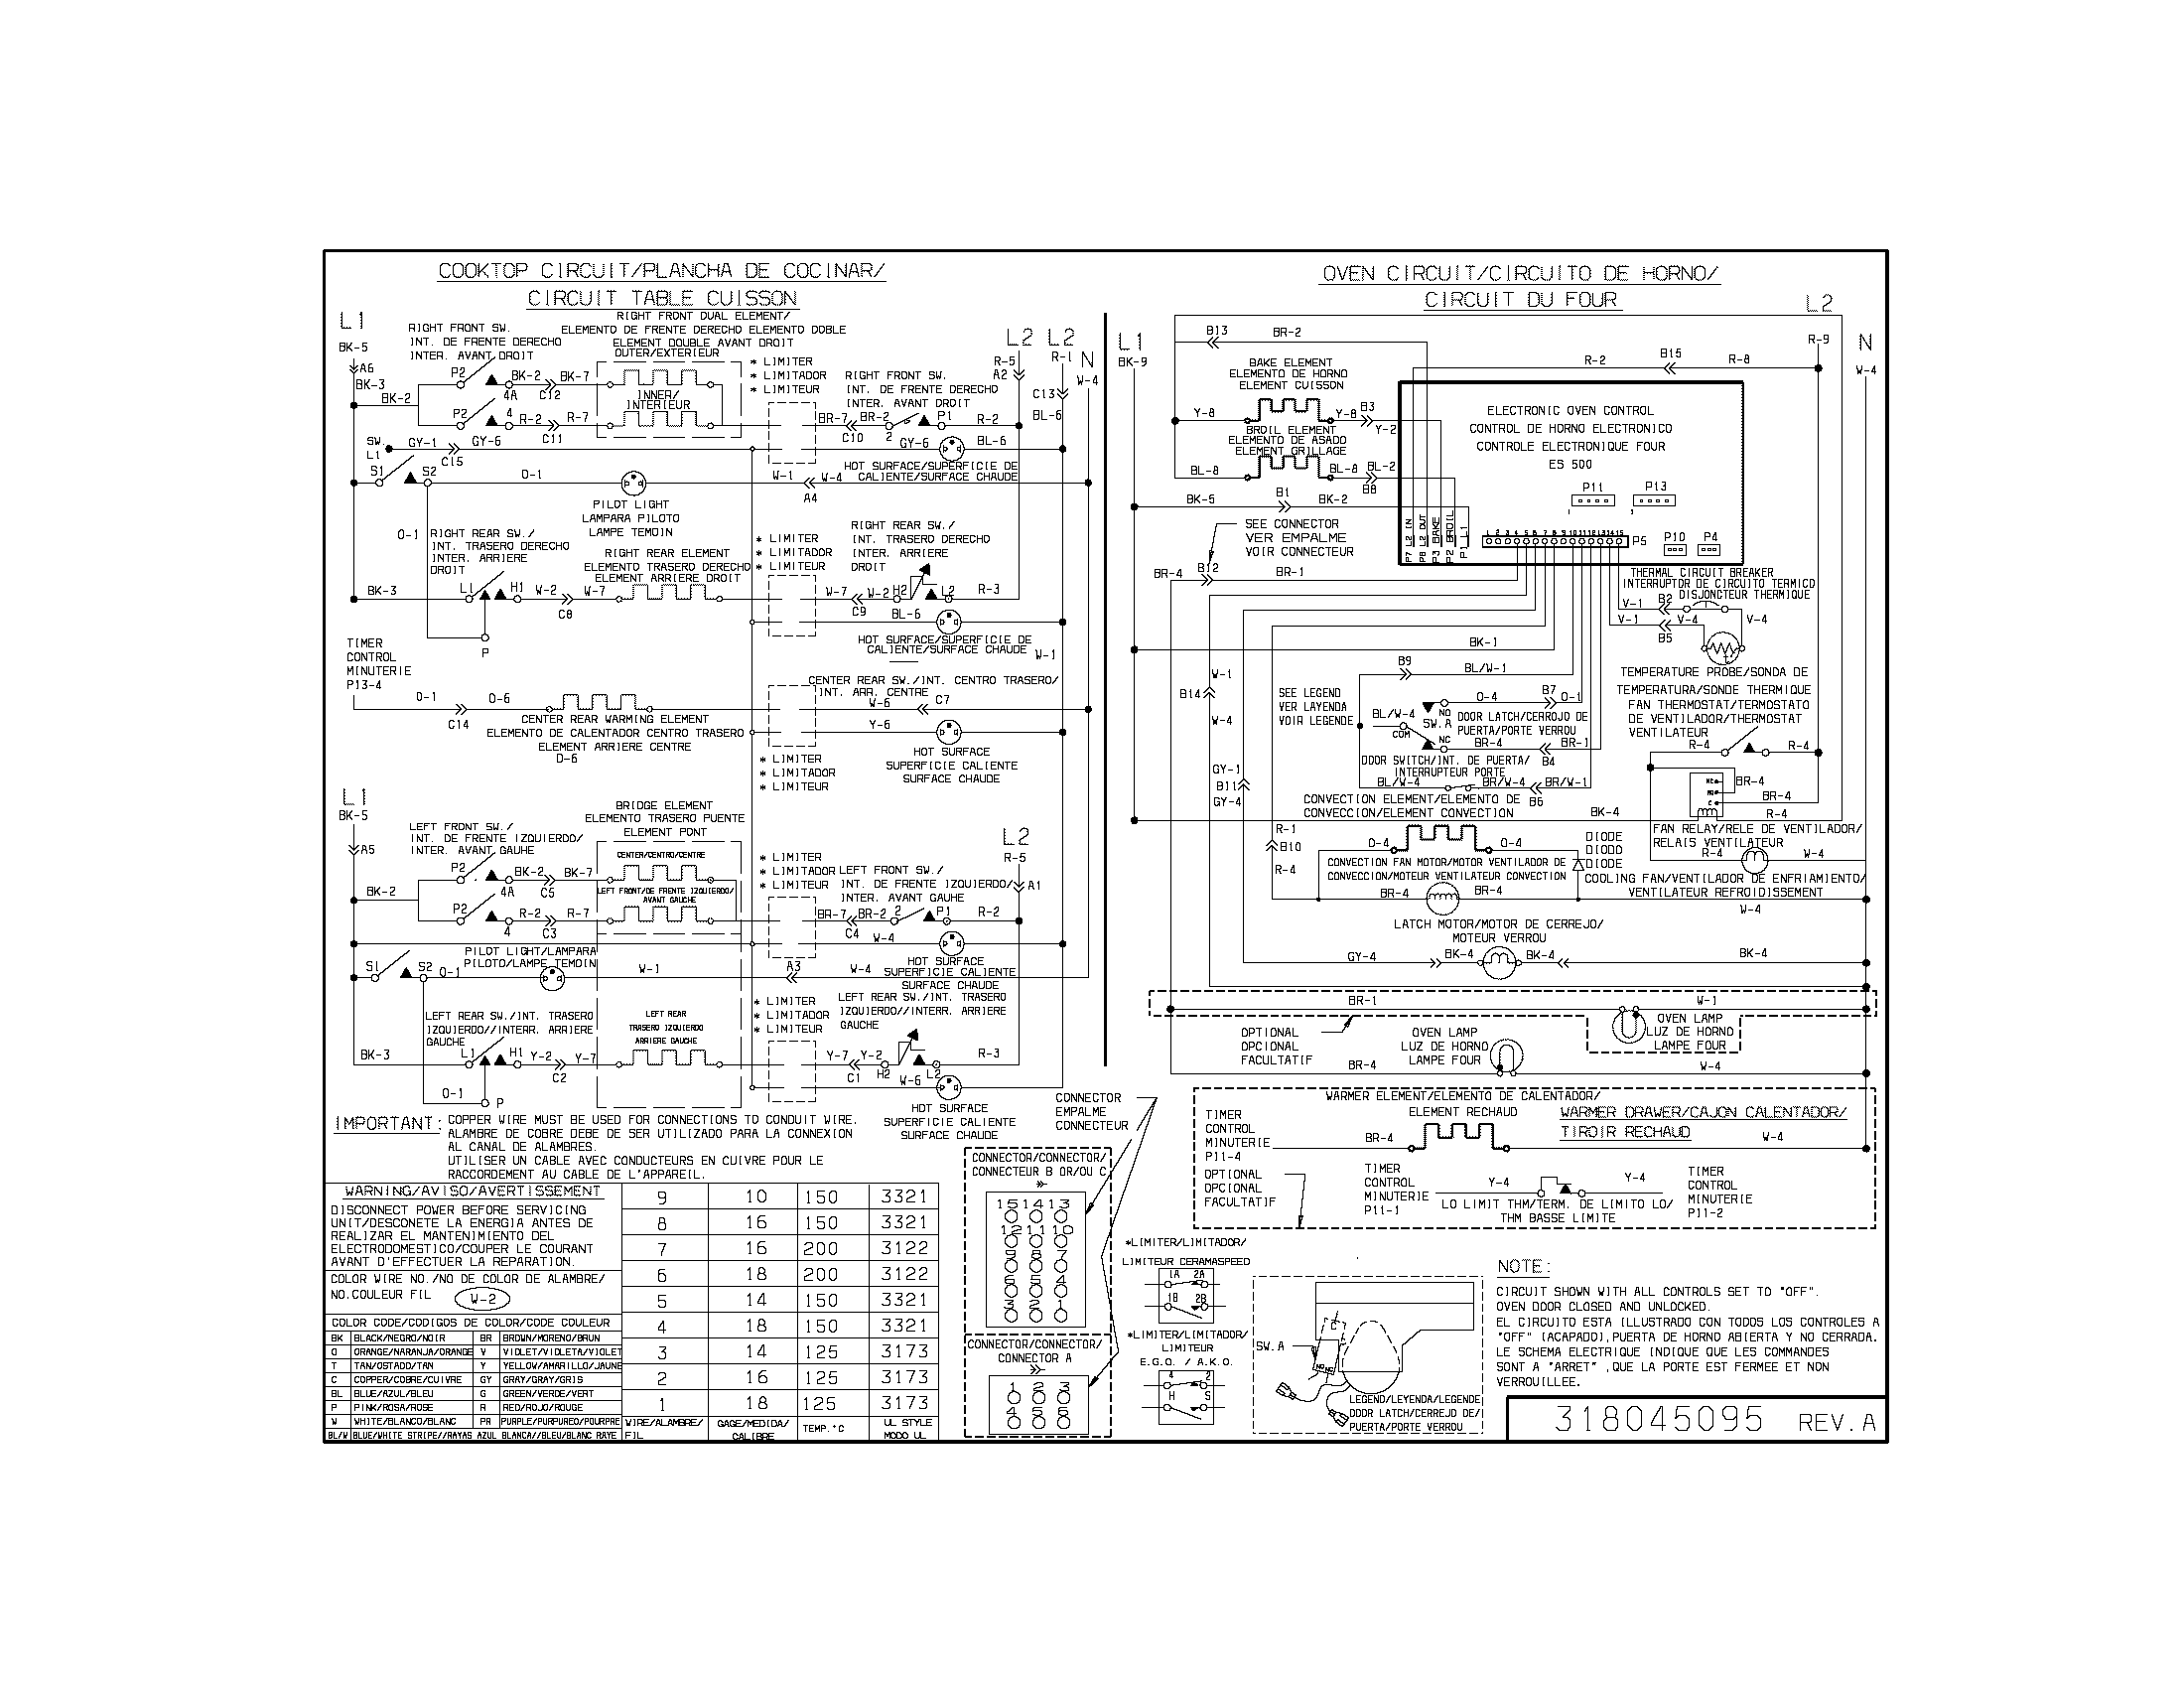 wiring diagram parts frigidaire cpes389cc1 range timer stove clocks and appliance timers frigidaire gallery refrigerator wiring diagram at webbmarketing.co